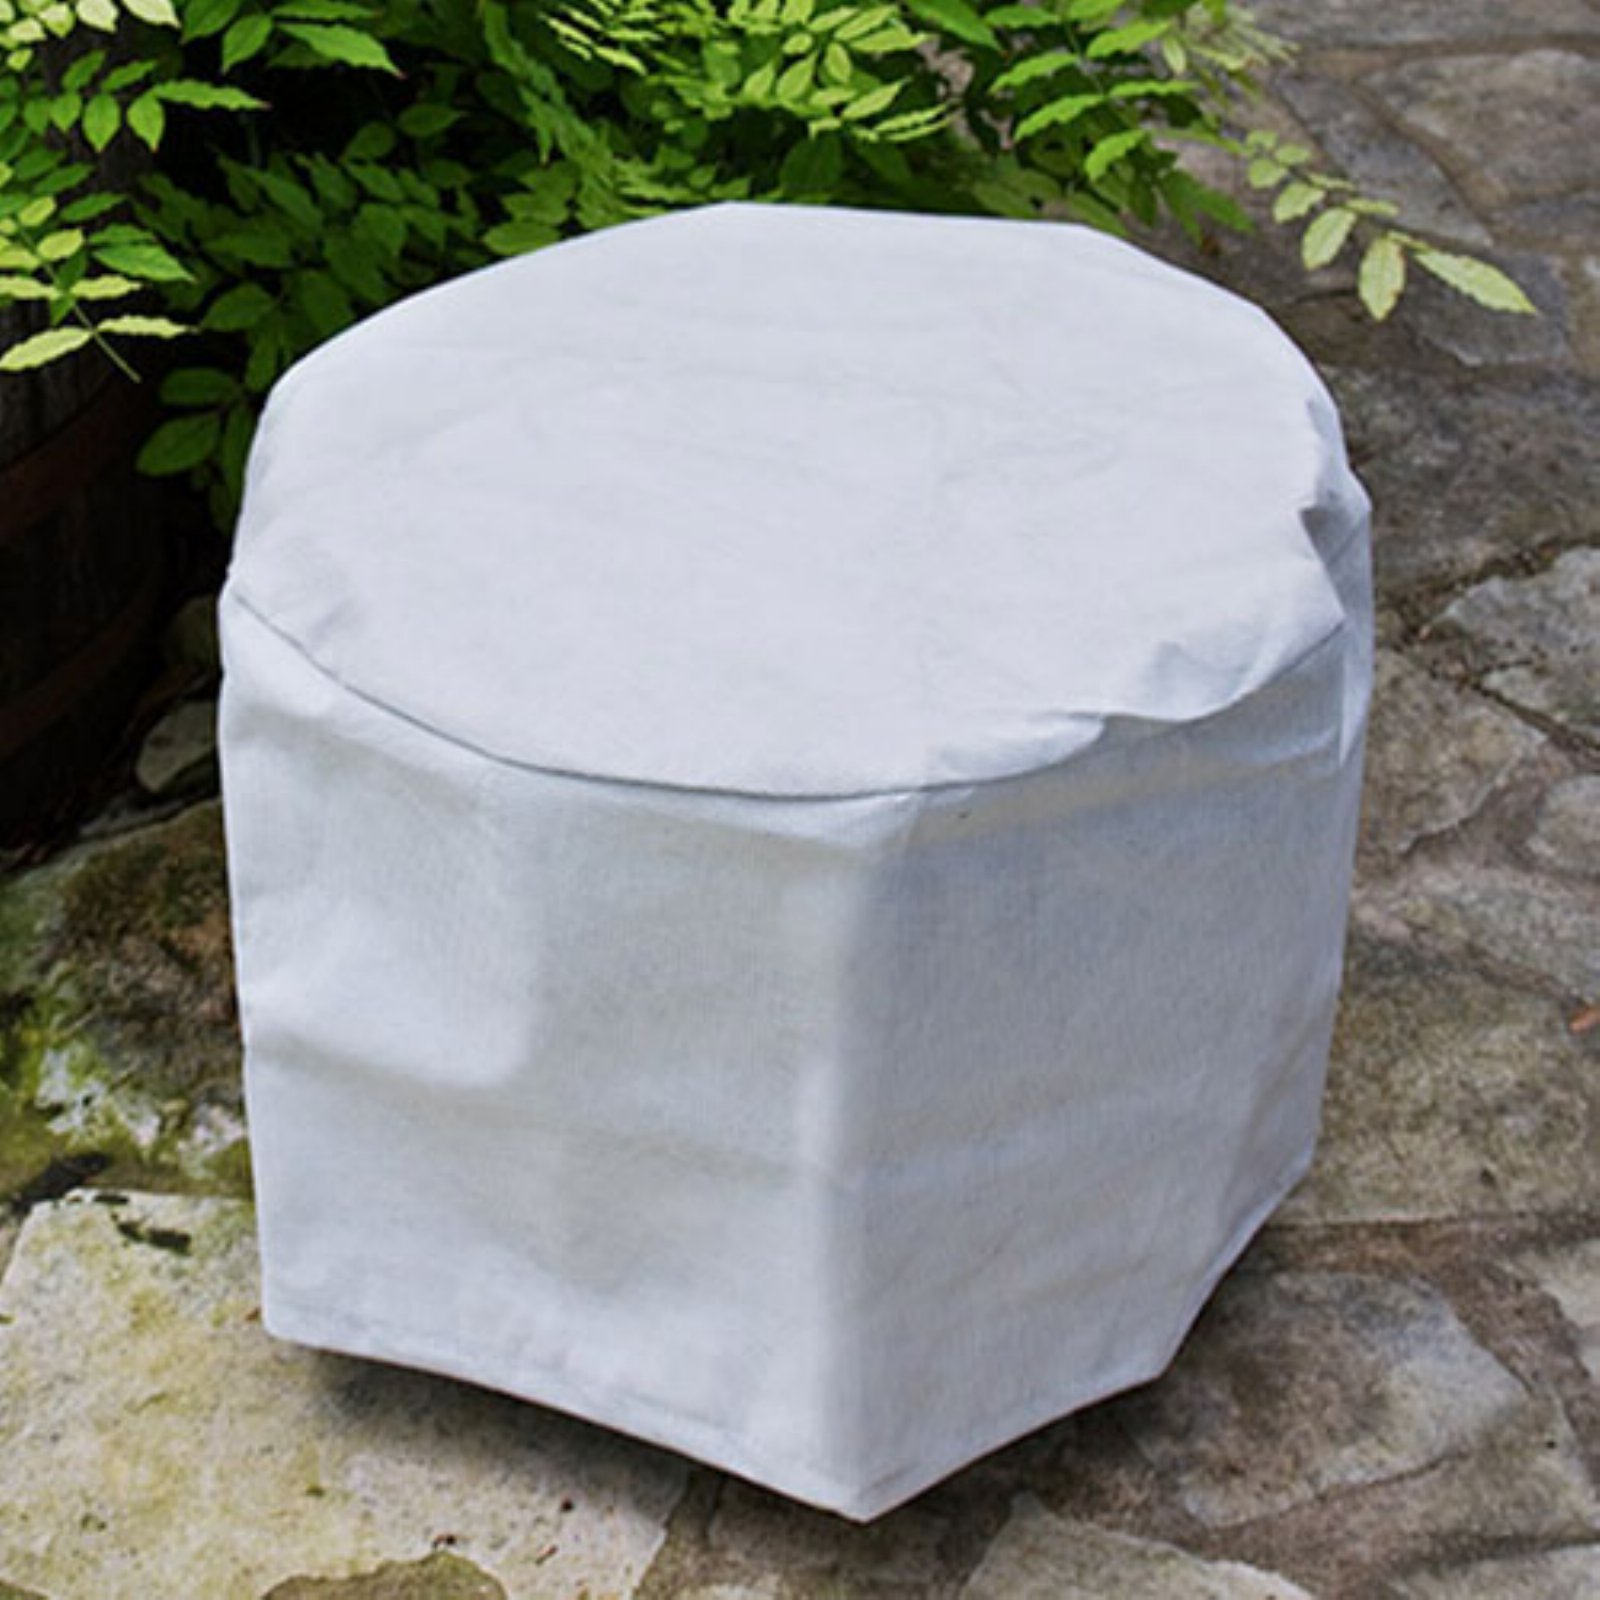 KoverRoos SupraRoos 22 in. White Round Table Cover